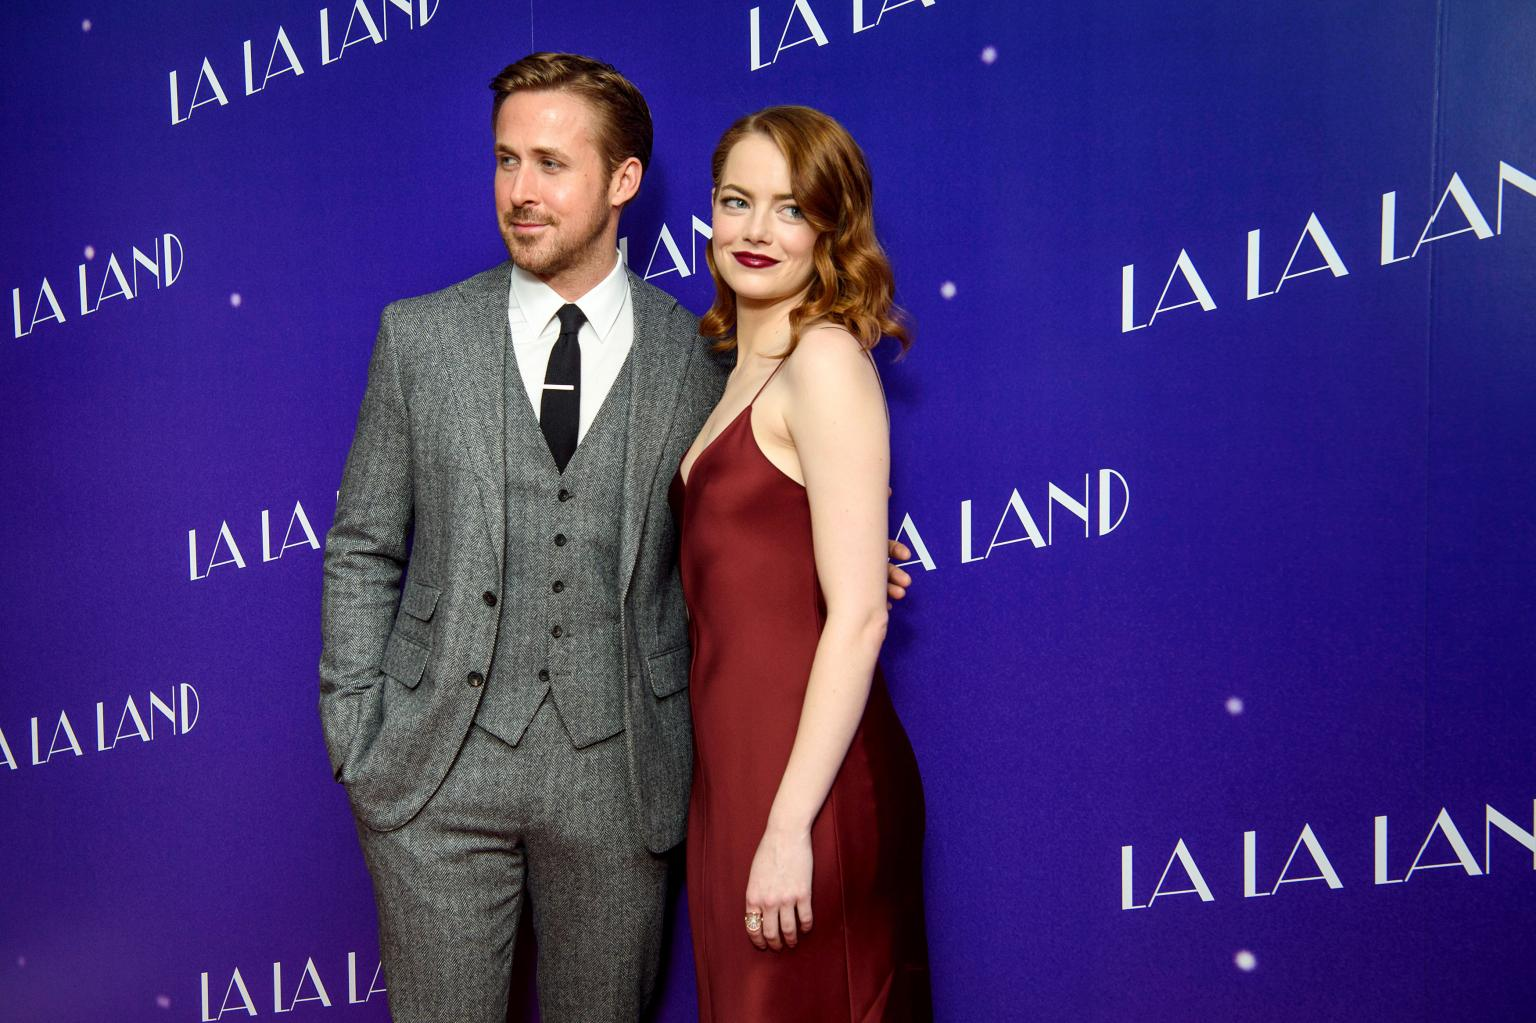 Emma Stone Says She Had a 'Meltdown' Over Ryan Gosling's 'Dirty Dancing' Lift in 'Crazy, Stupid, Love'